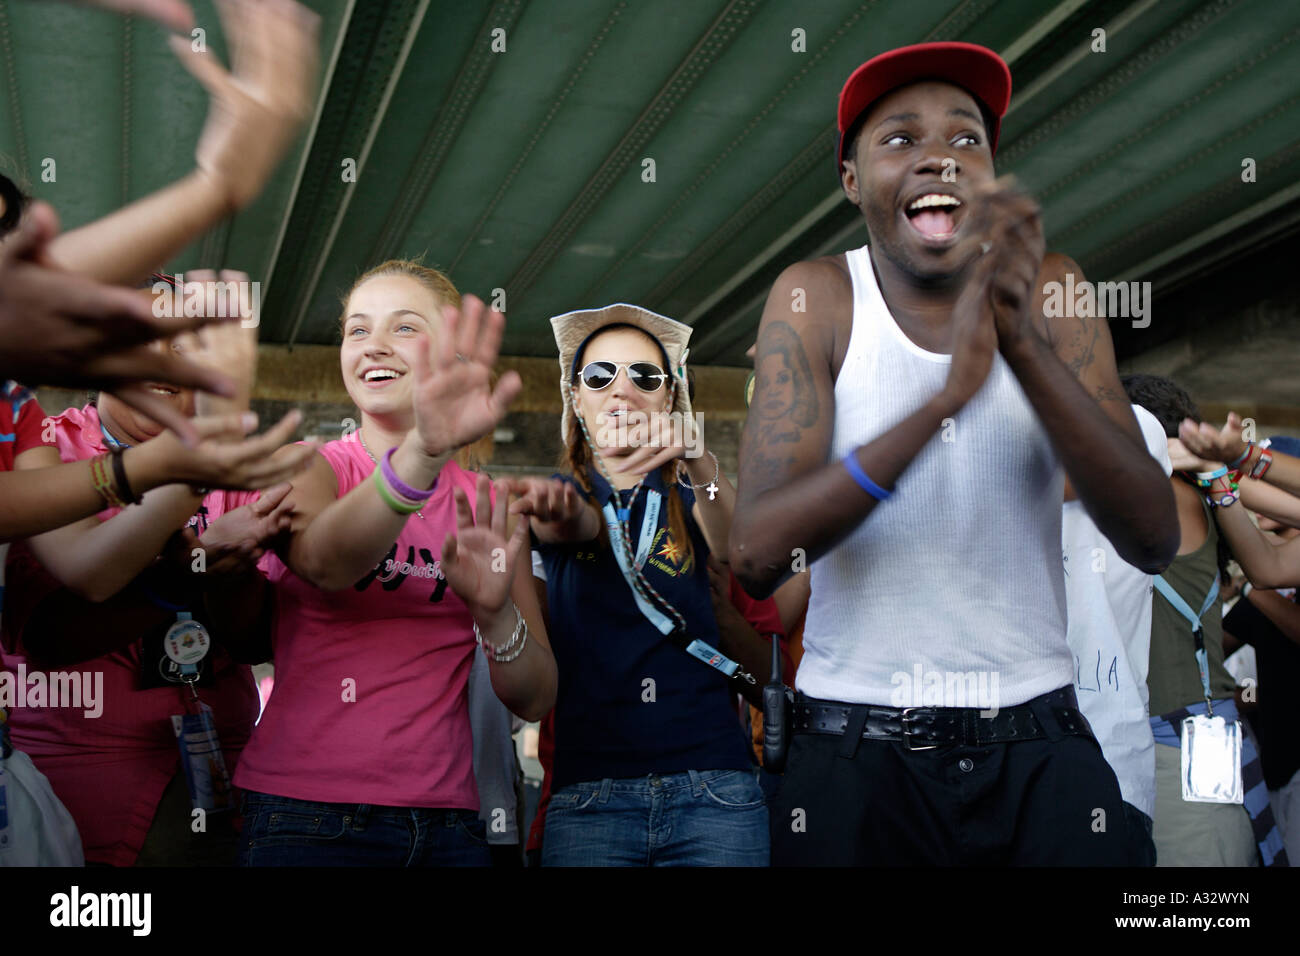 World Youth Day - young pilgrims cheering for the Pope, Koeln, Germany - Stock Image